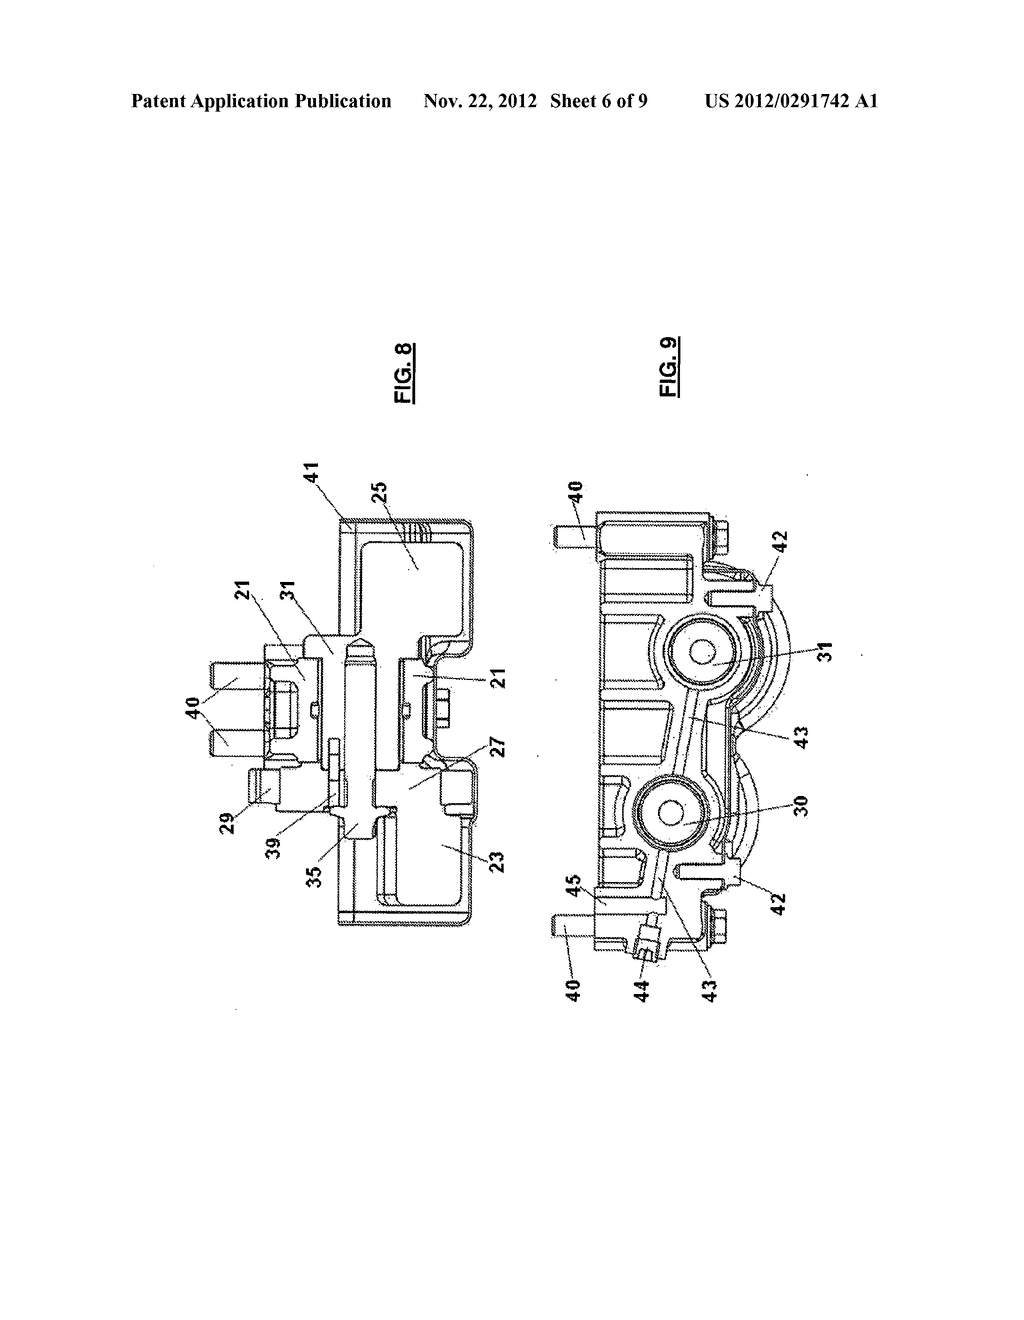 COUNTER ROTATING MASS SYSTEM CONFIGURED TO BE APPLIED TO AN INLINE-FOUR  INTERNAL COMBUSTION ENGINE TO BALANCE THE VIBRATIONS PRODUCED BY SAID ENGINE,  ...